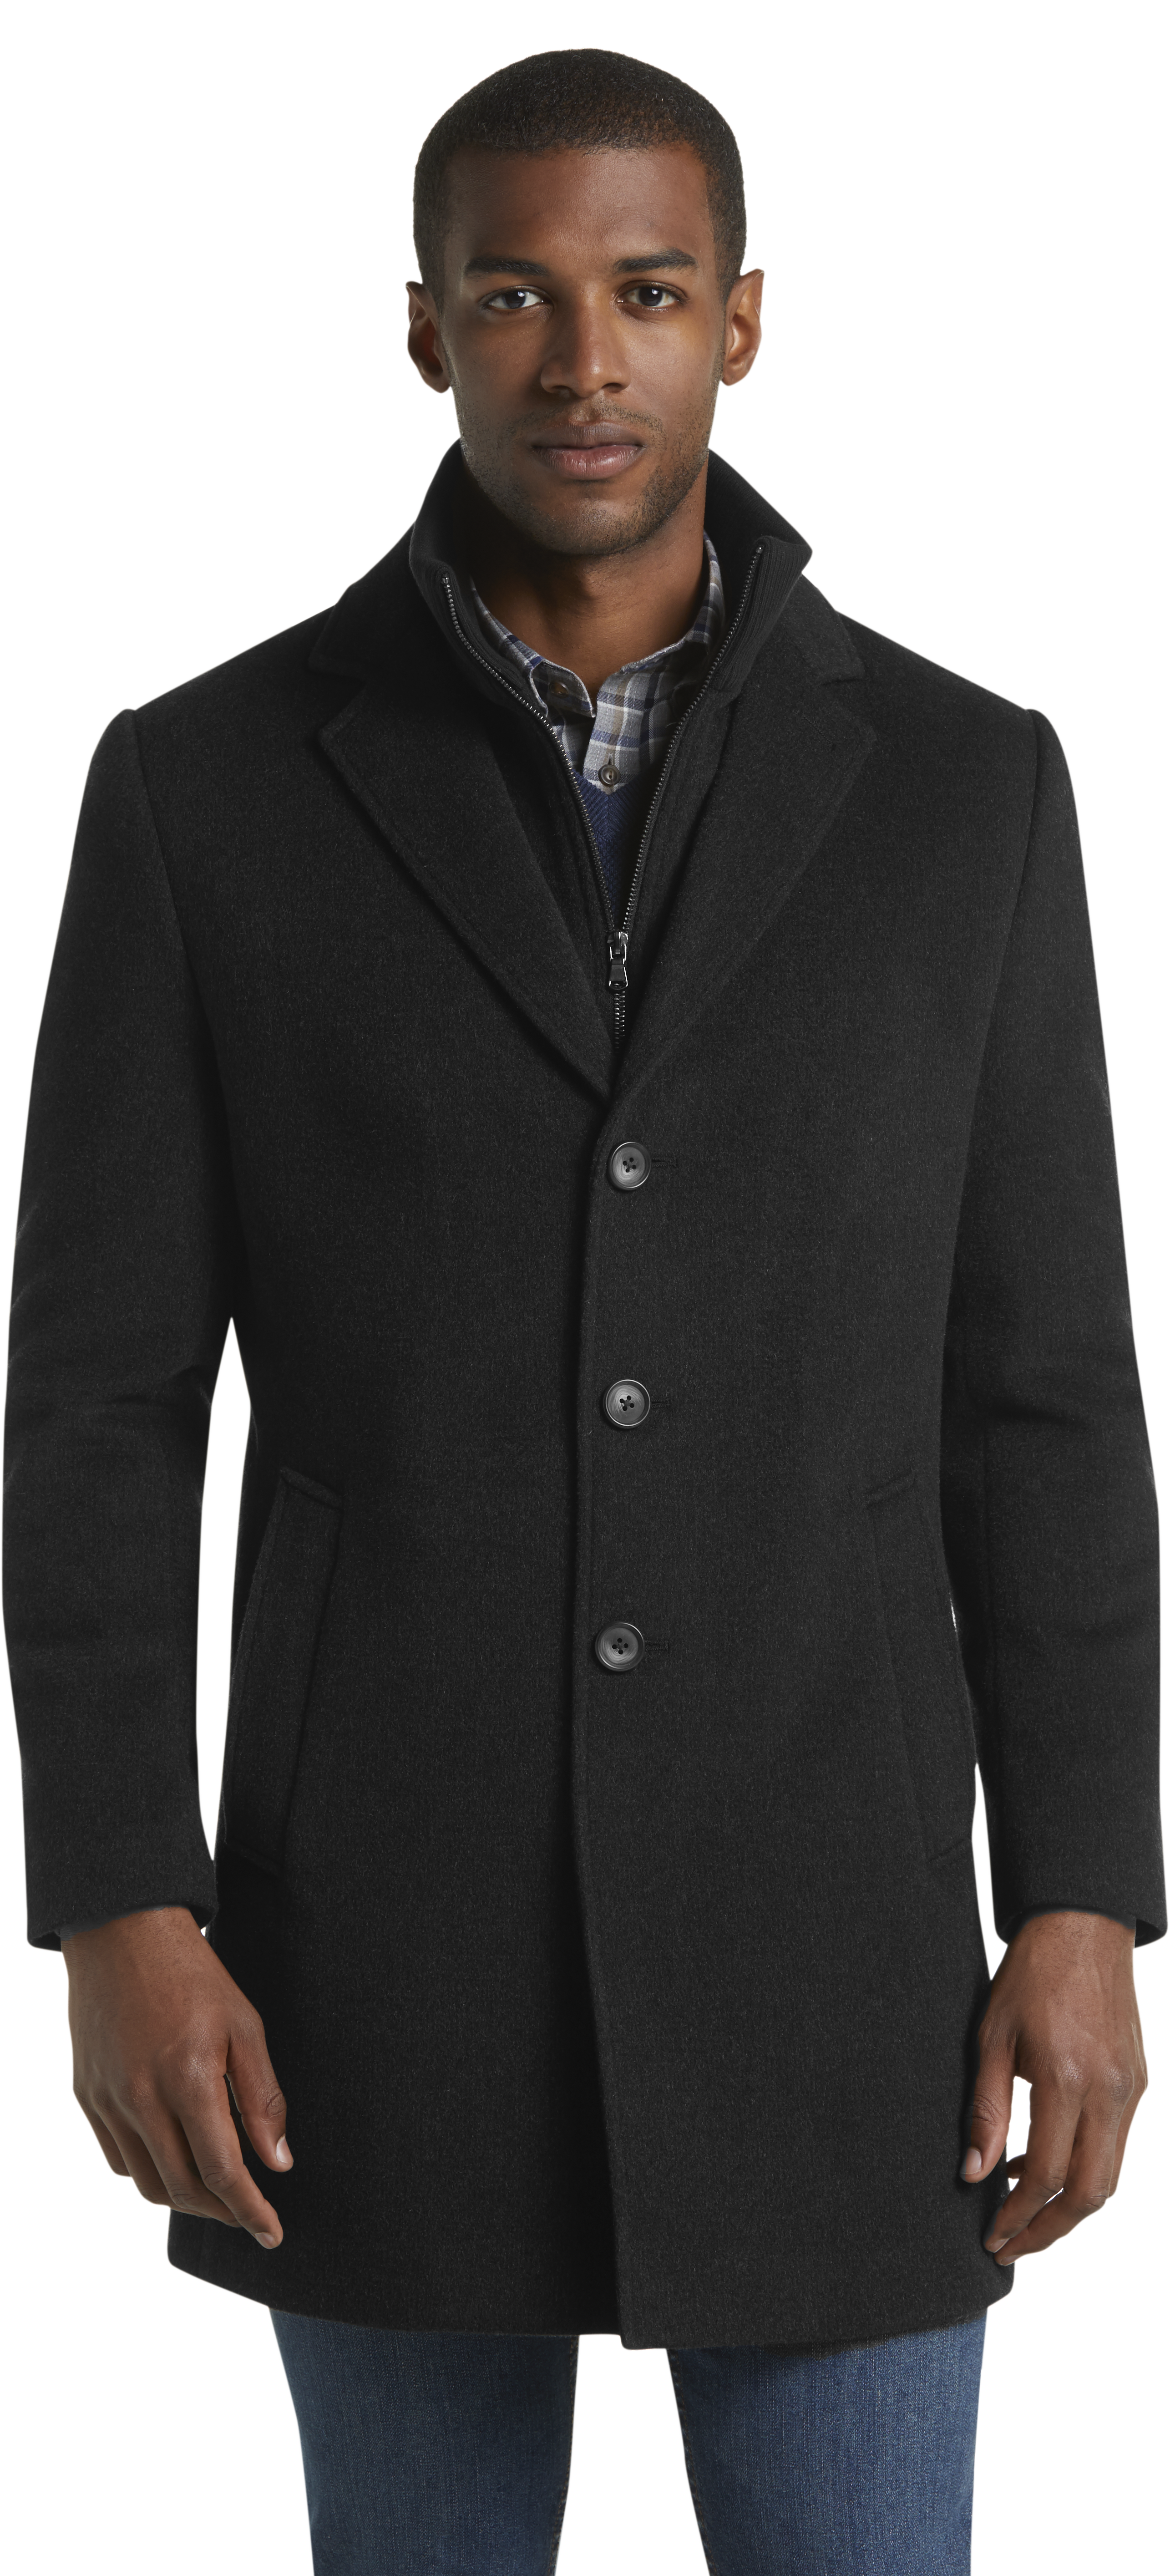 1905 Collection Tailored Fit Wool Blend Topcoat